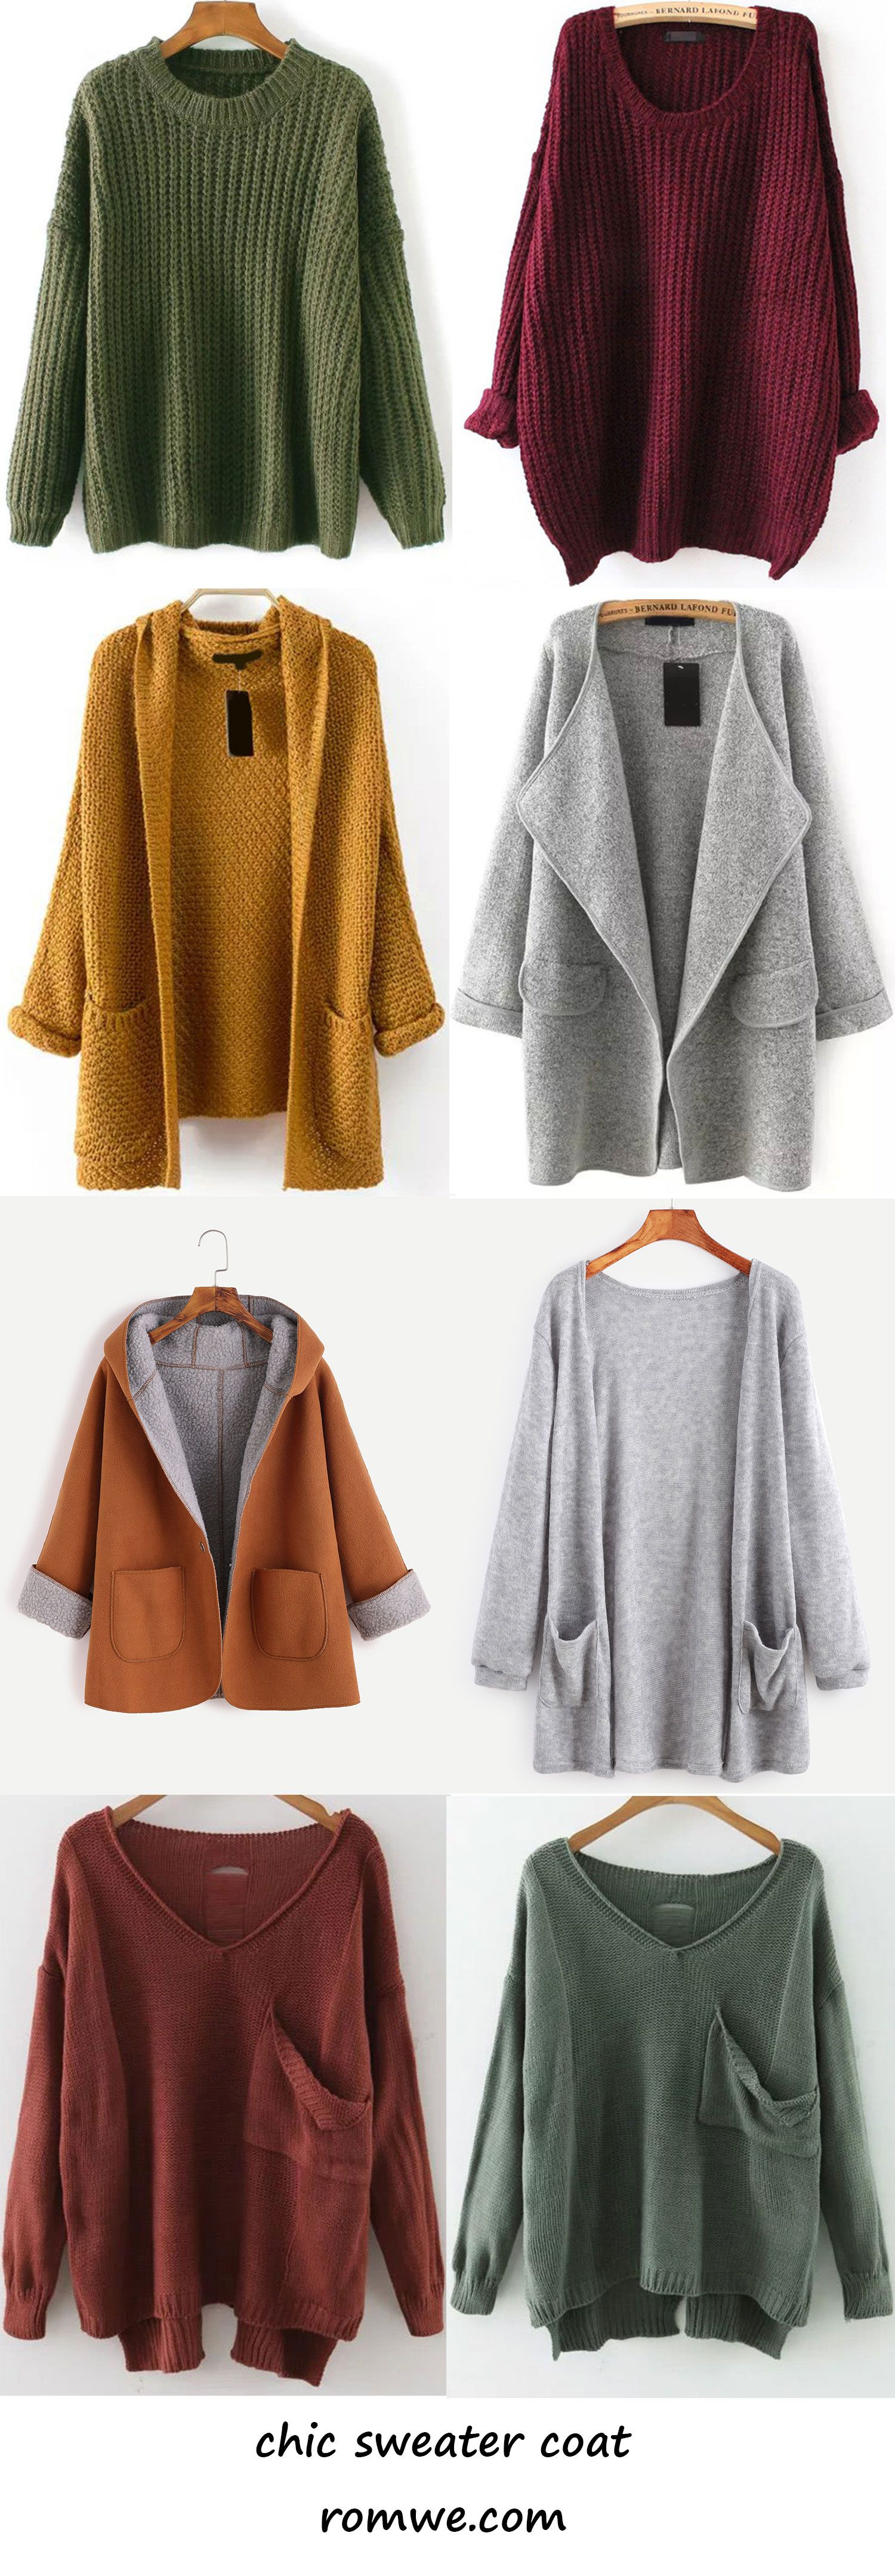 fall sweaters and cardigans 2017 - romwe.com | Romwe Hot Buy ...